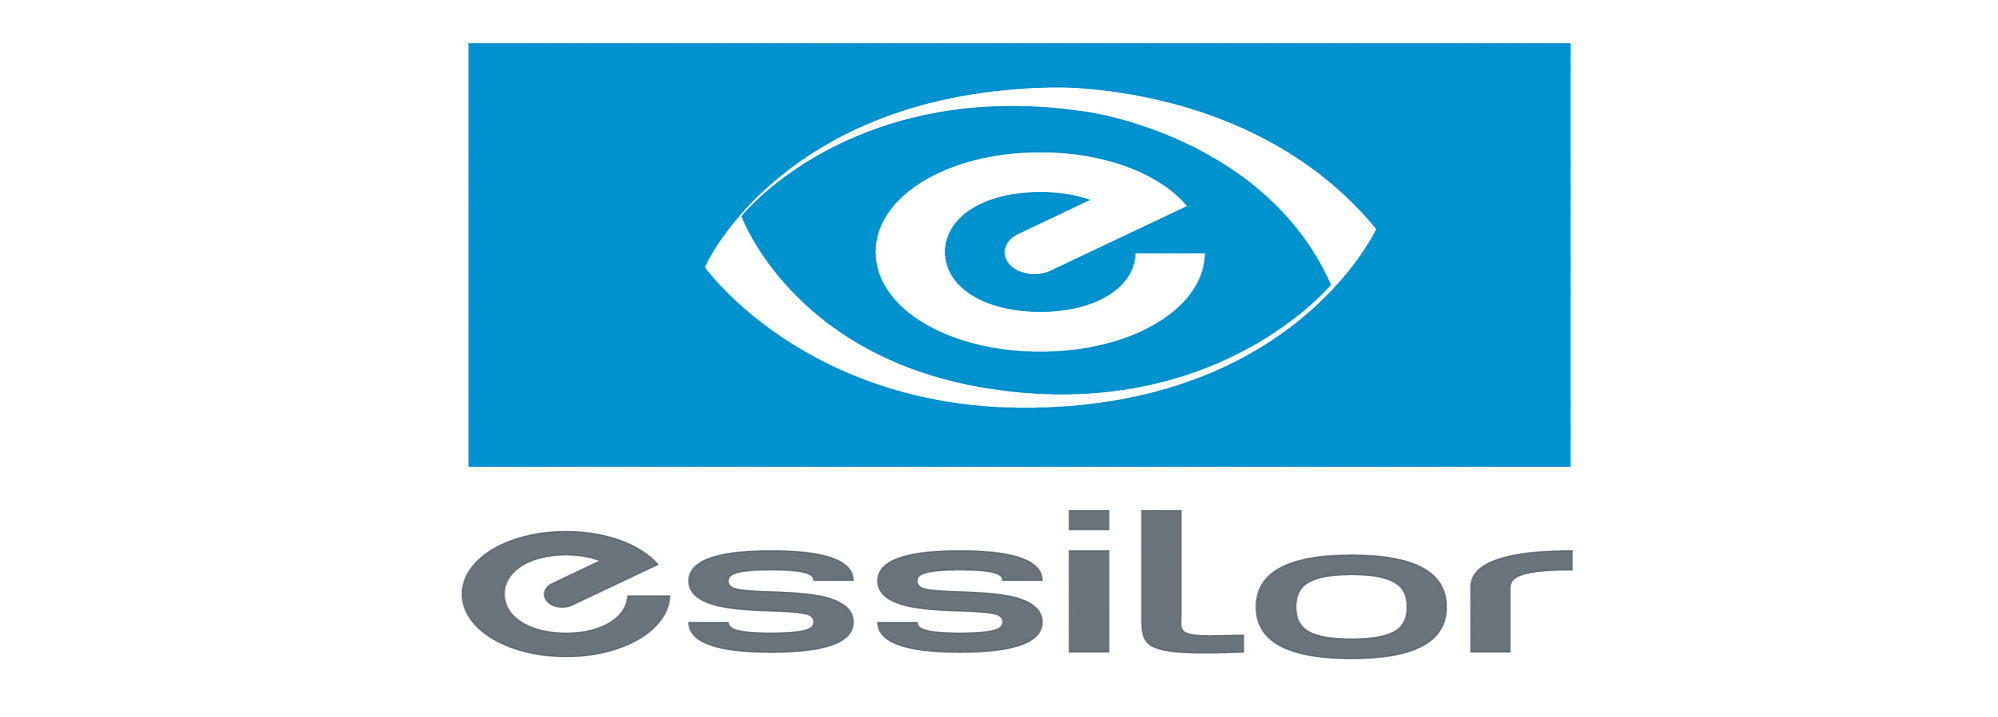 IcareLabs is a certified Essilor digital processing lab